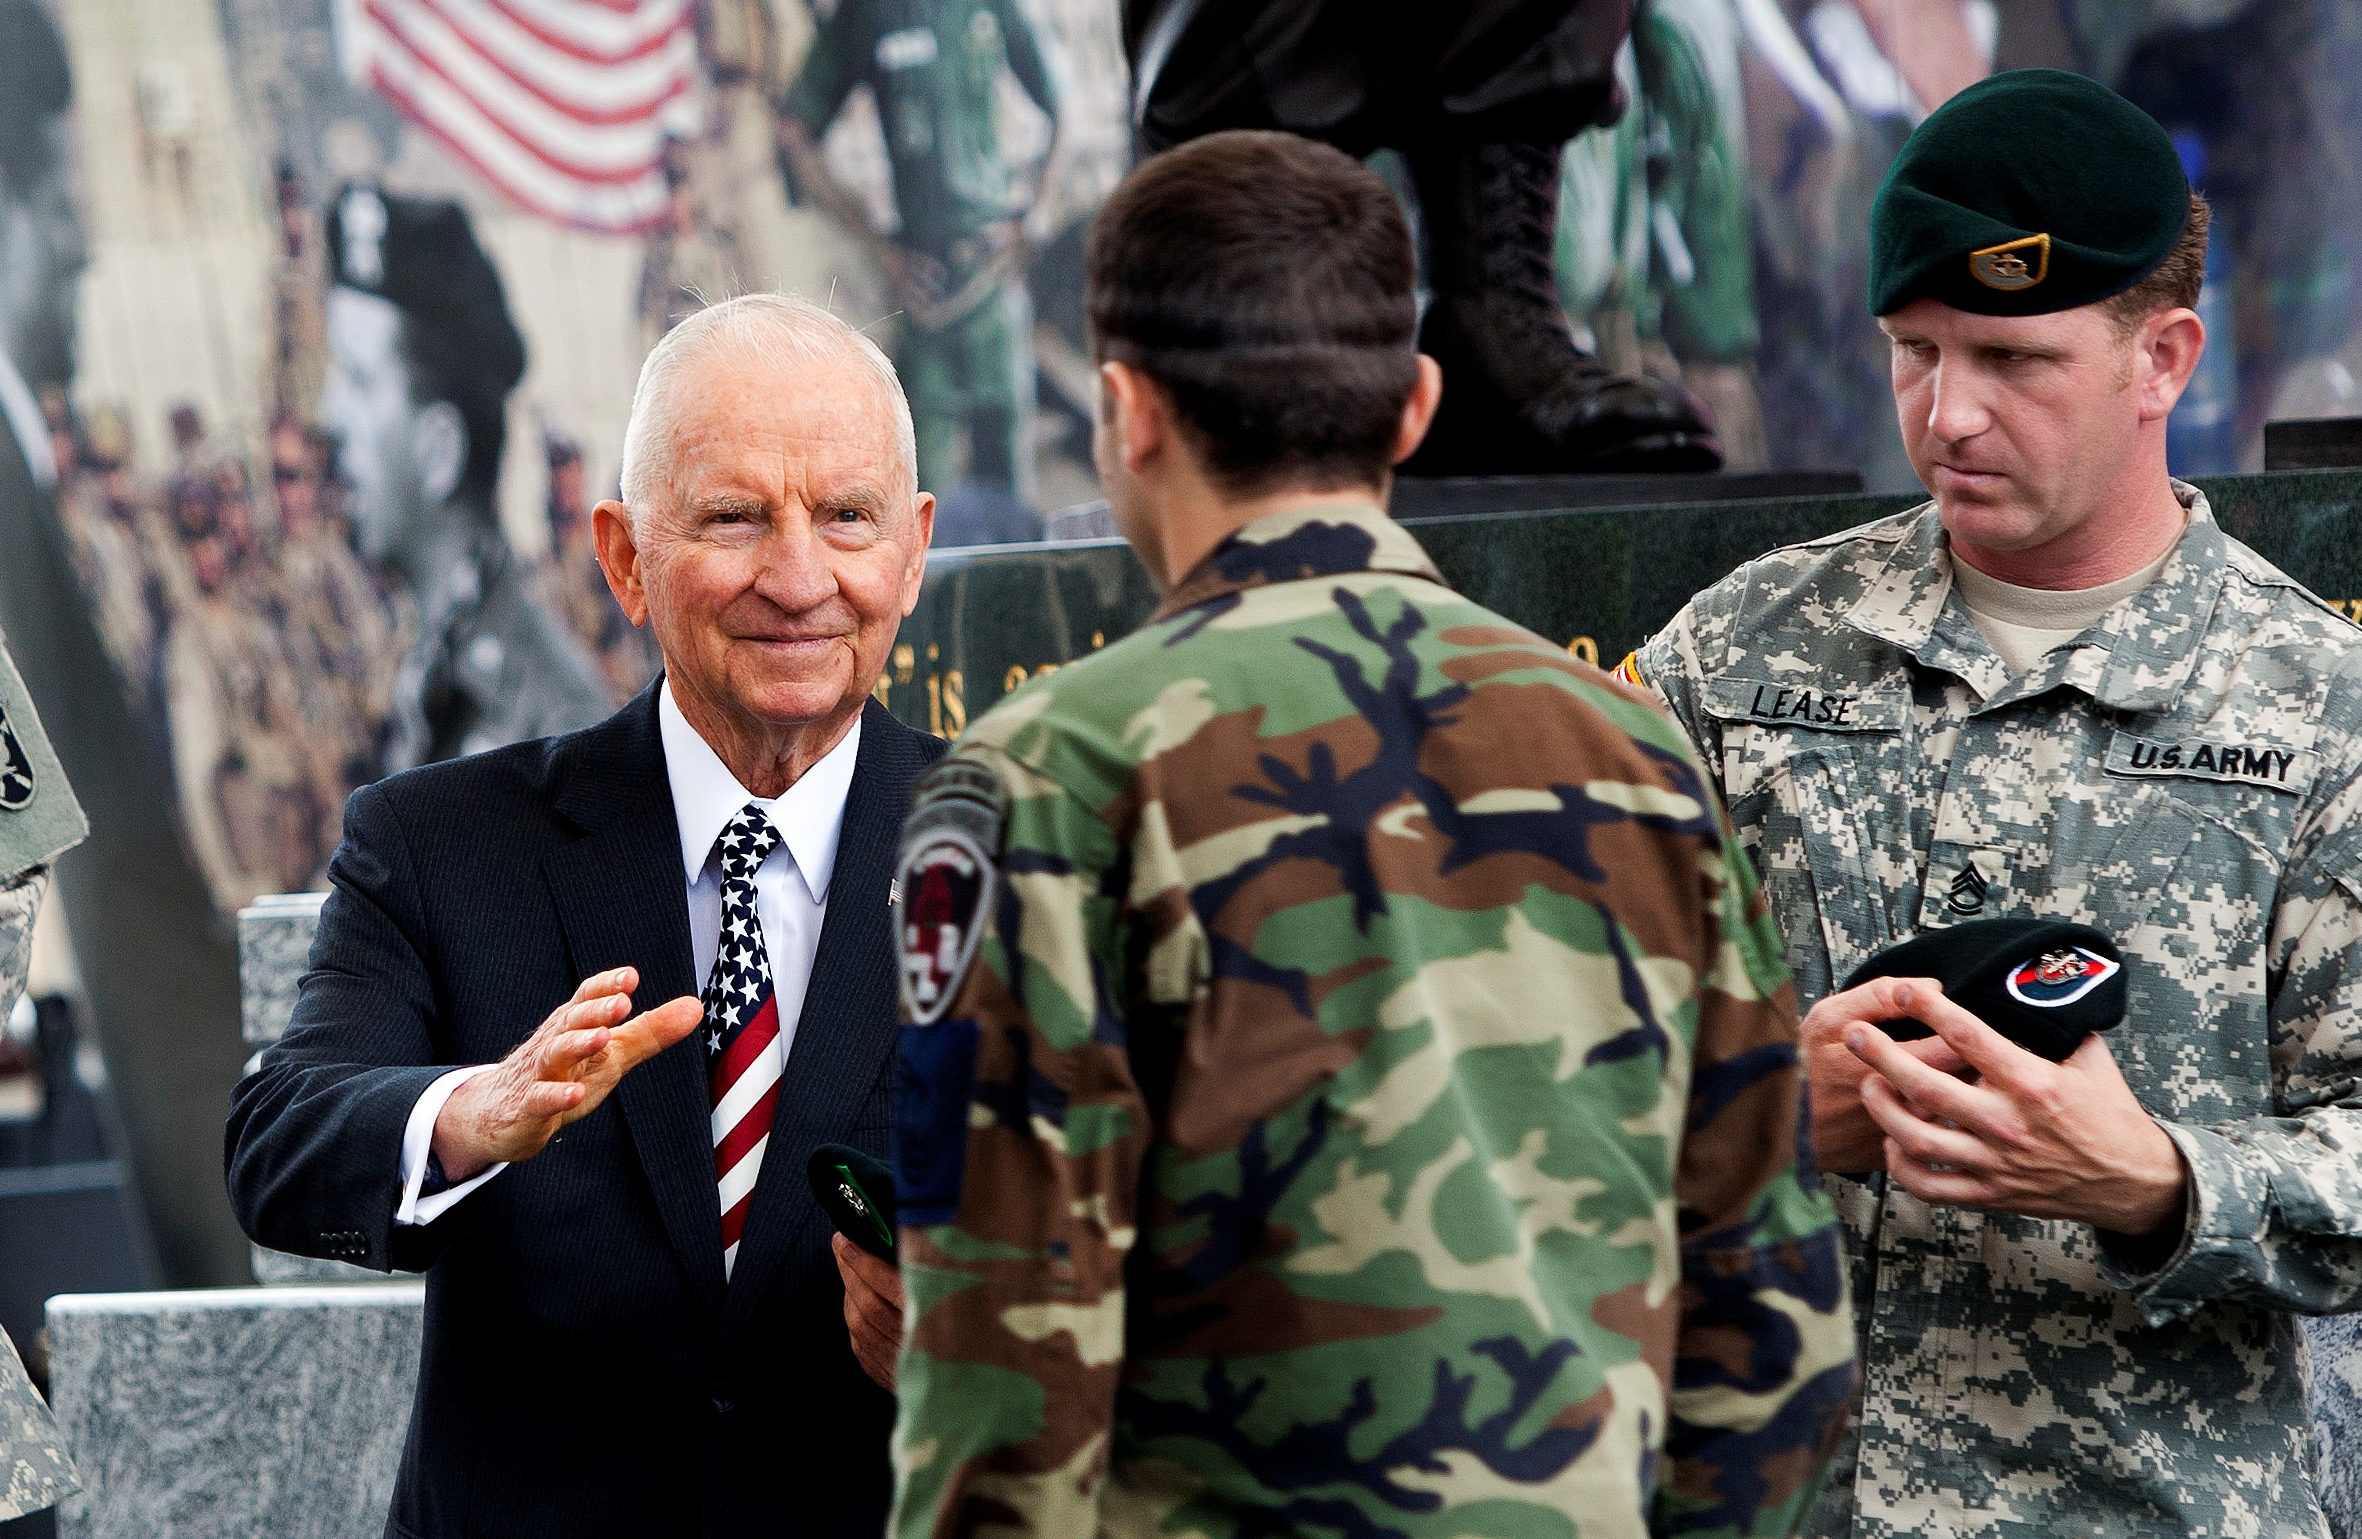 H. Ross Perot, an honorary member of the Special Forces regiment, congratulates an allied student of the Special Forces Qualification Course during his class's graduation ceremony at the U.S. Army John F. Kennedy Special Warfare Center and School in Fort Bragg, North Carolina, U.S., April 5, 2012. Picture taken on April 5, 2012. Courtesy Russell Klika/U.S. Army/John F. Kennedy Special Warfare Center and School/Handout via REUTERS